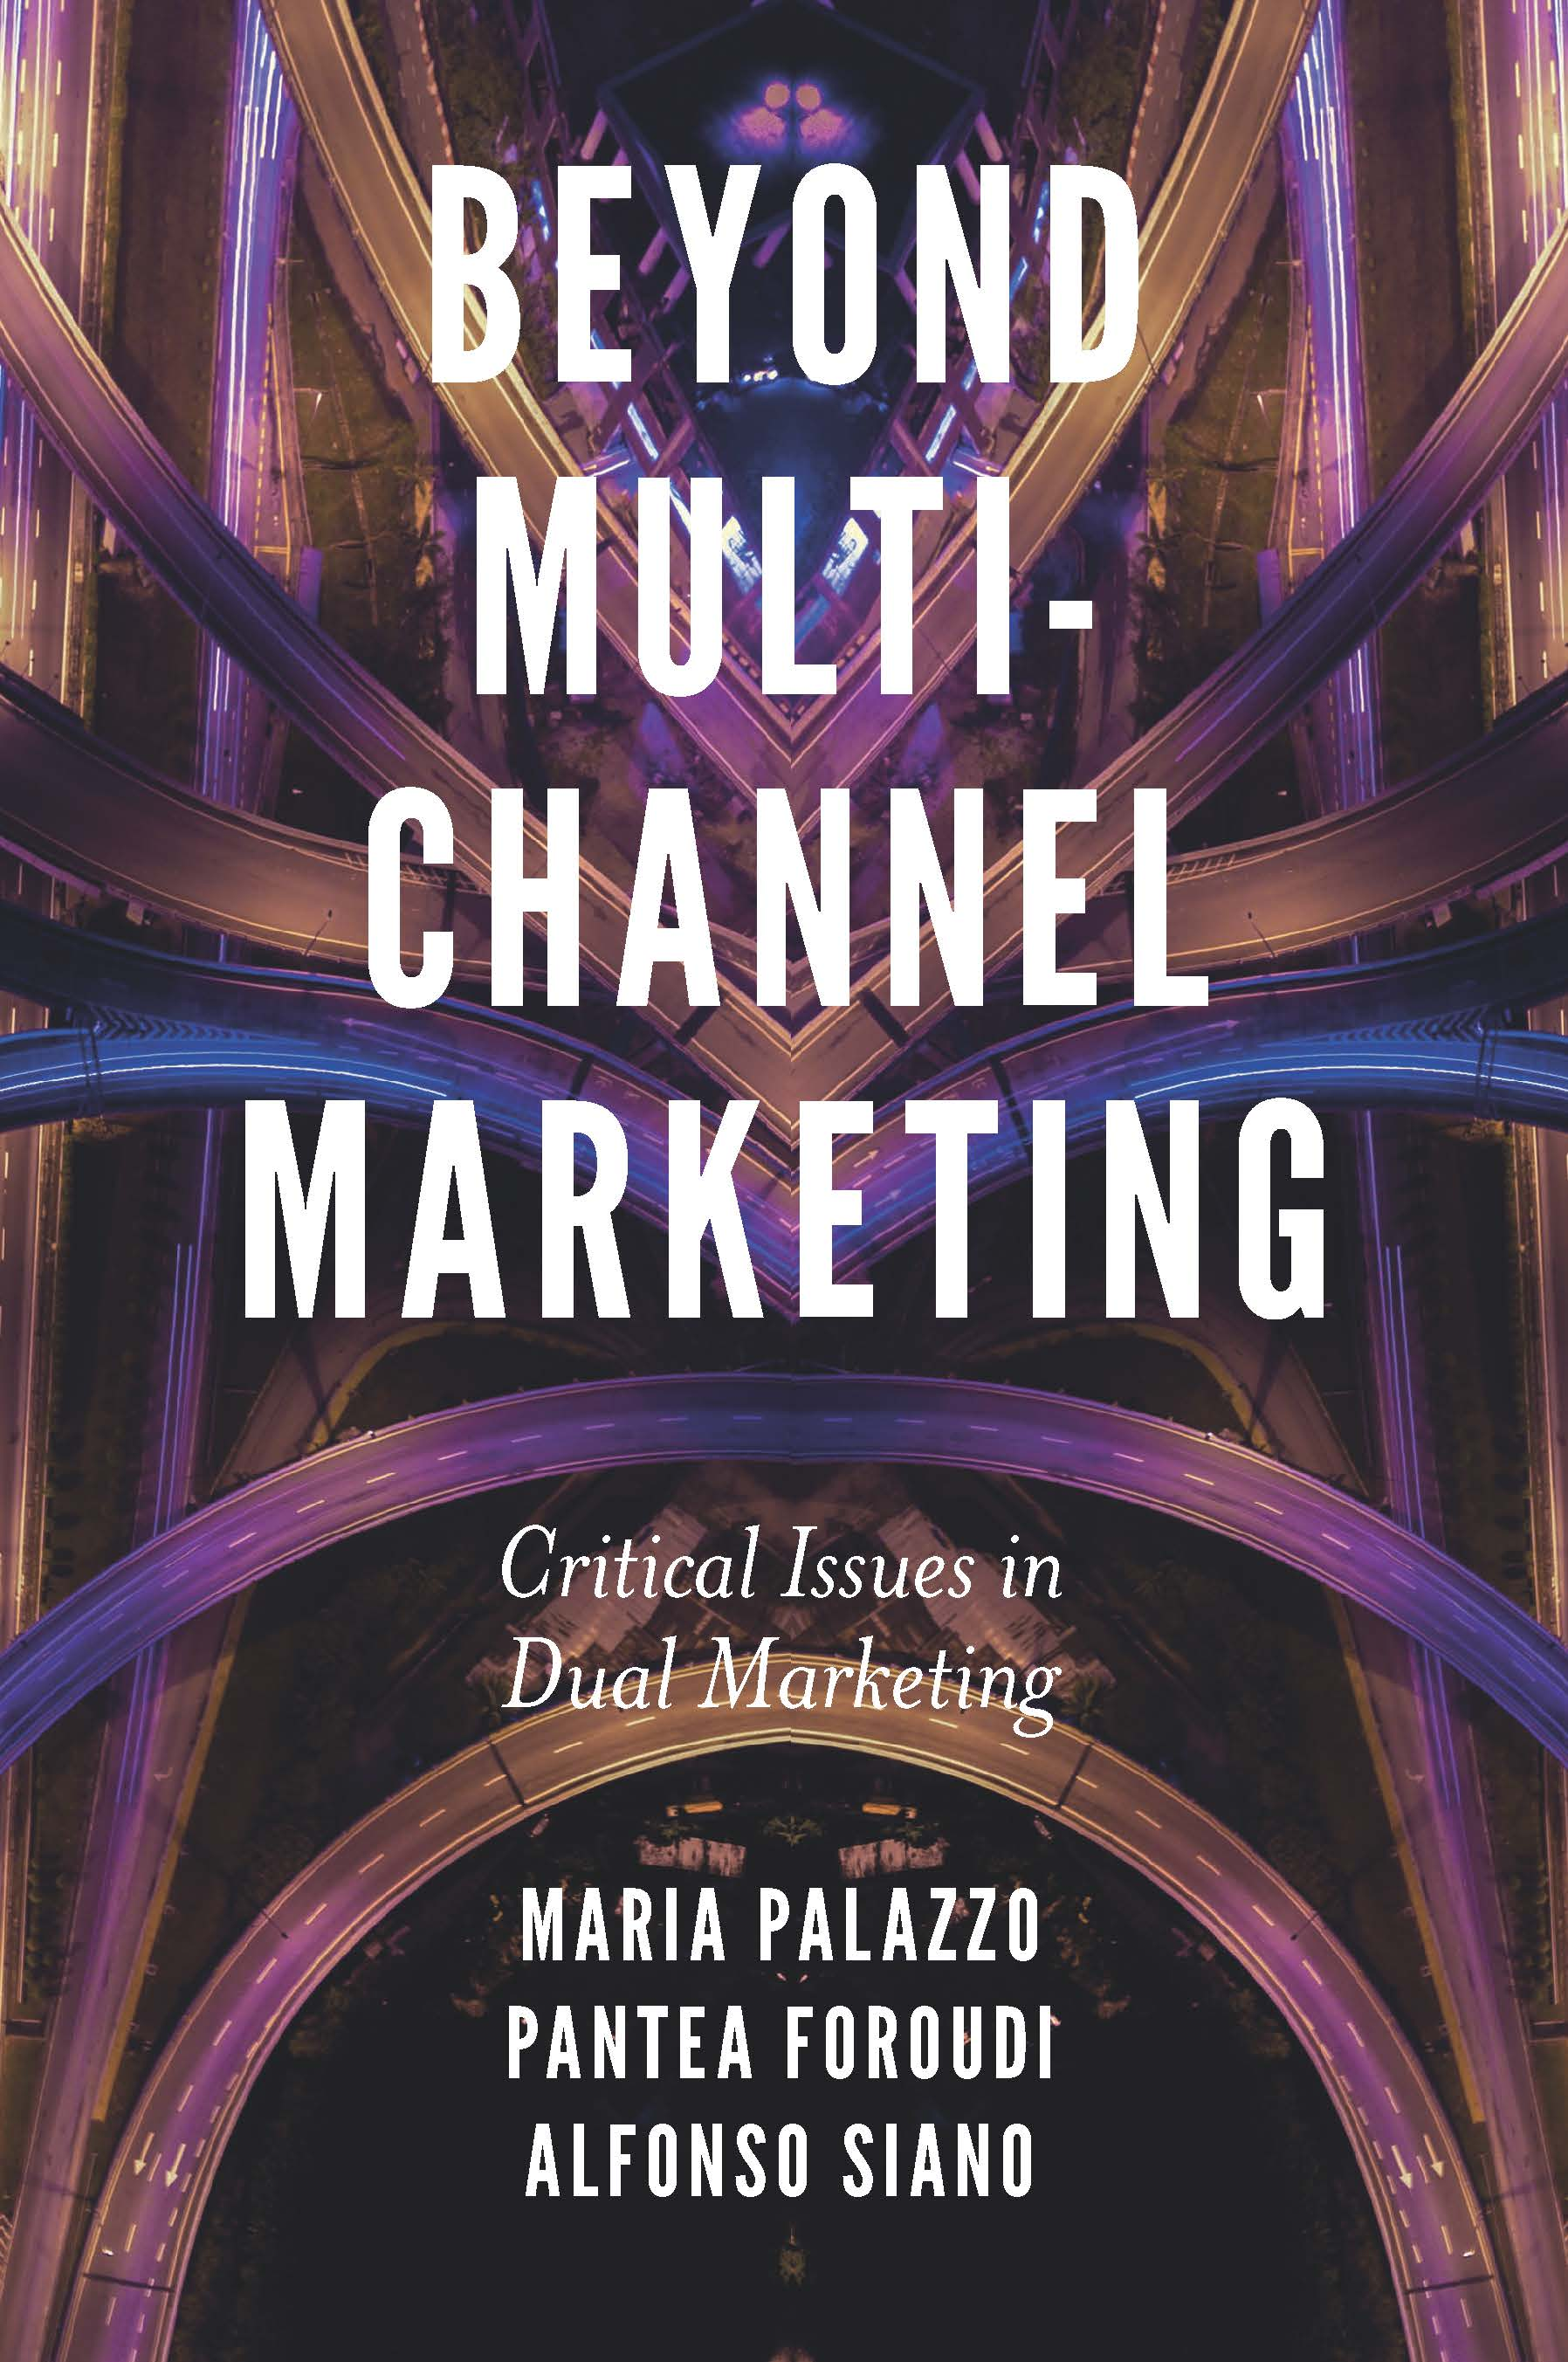 Book cover for Beyond Multi-Channel Marketing:  Critical Issues in Dual Marketing a book by Maria  Palazzo, Pantea  Foroudi, Alfonso  Siano